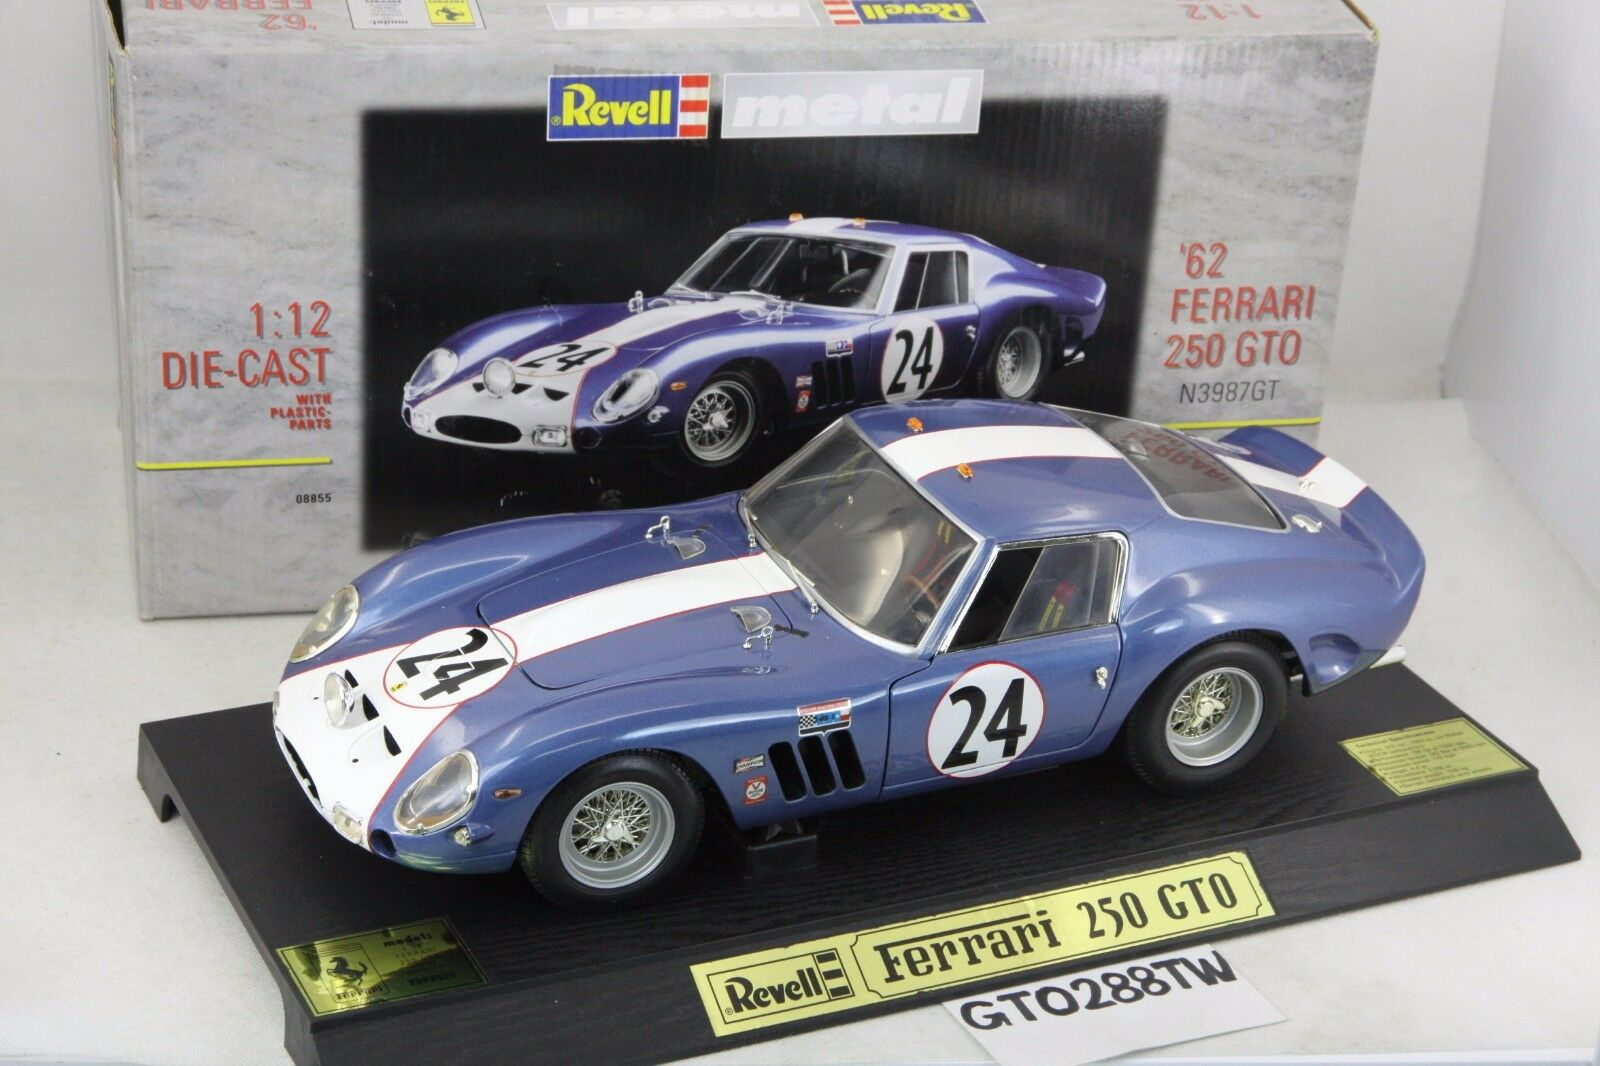 Revell 1 12 scale Ferrari 250 GTO 1962 Sebring 12Hr winner  24 die-cast model